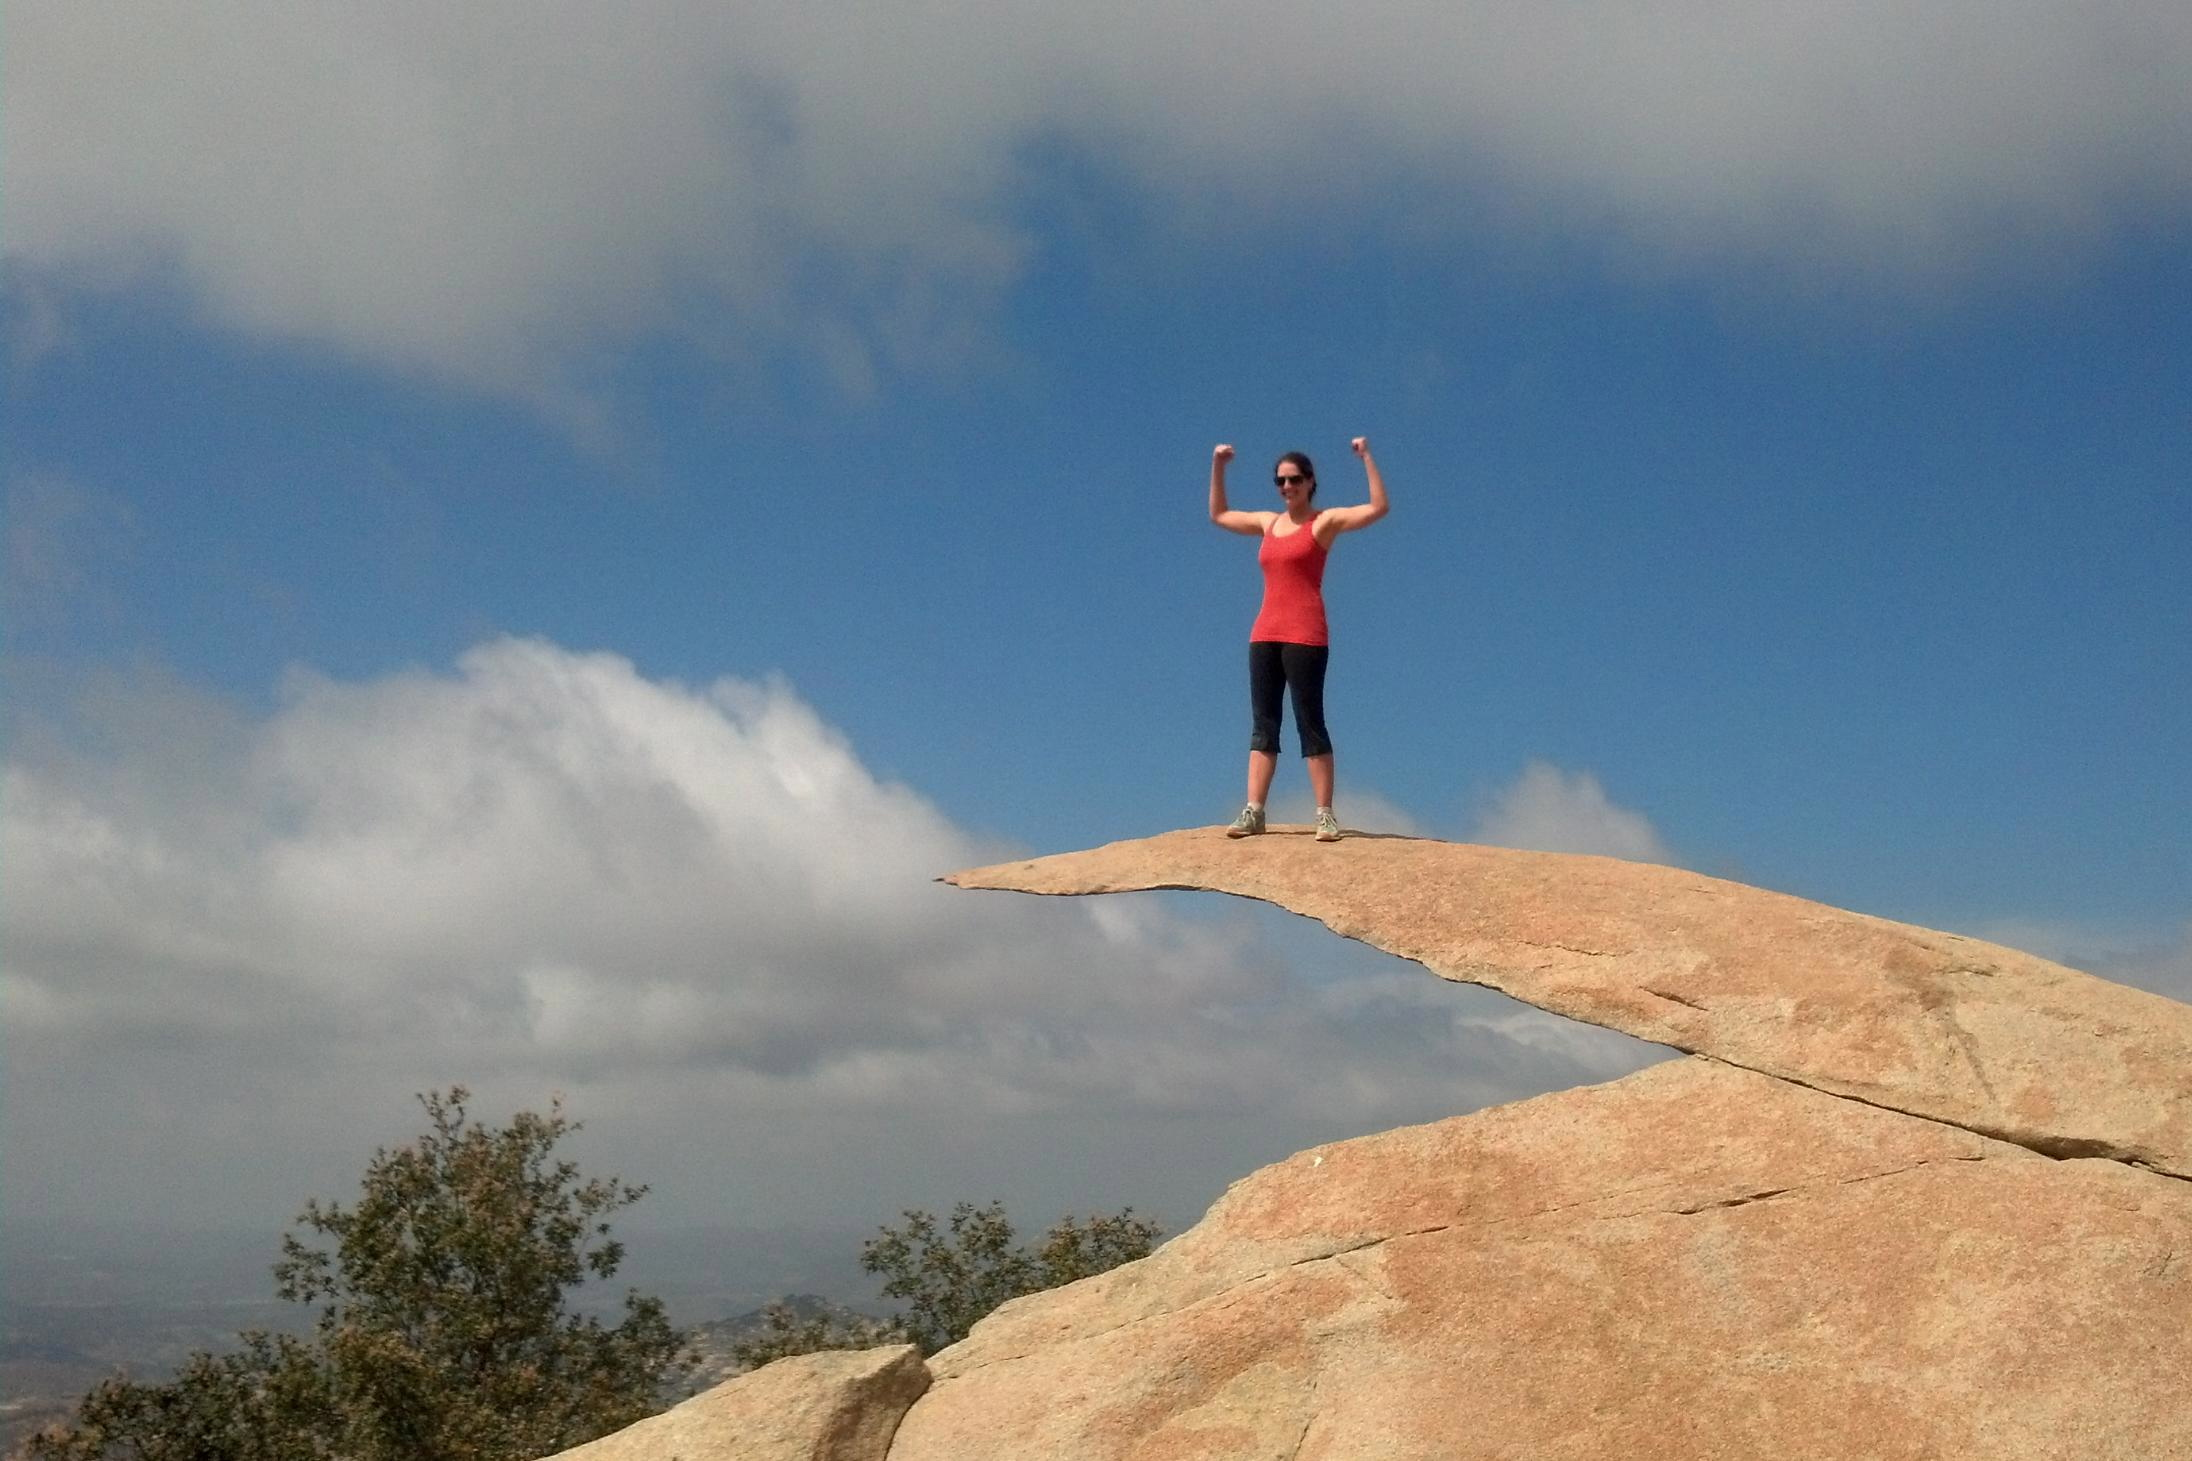 Potato Chip Rock is a famous hiking spot in San Diego